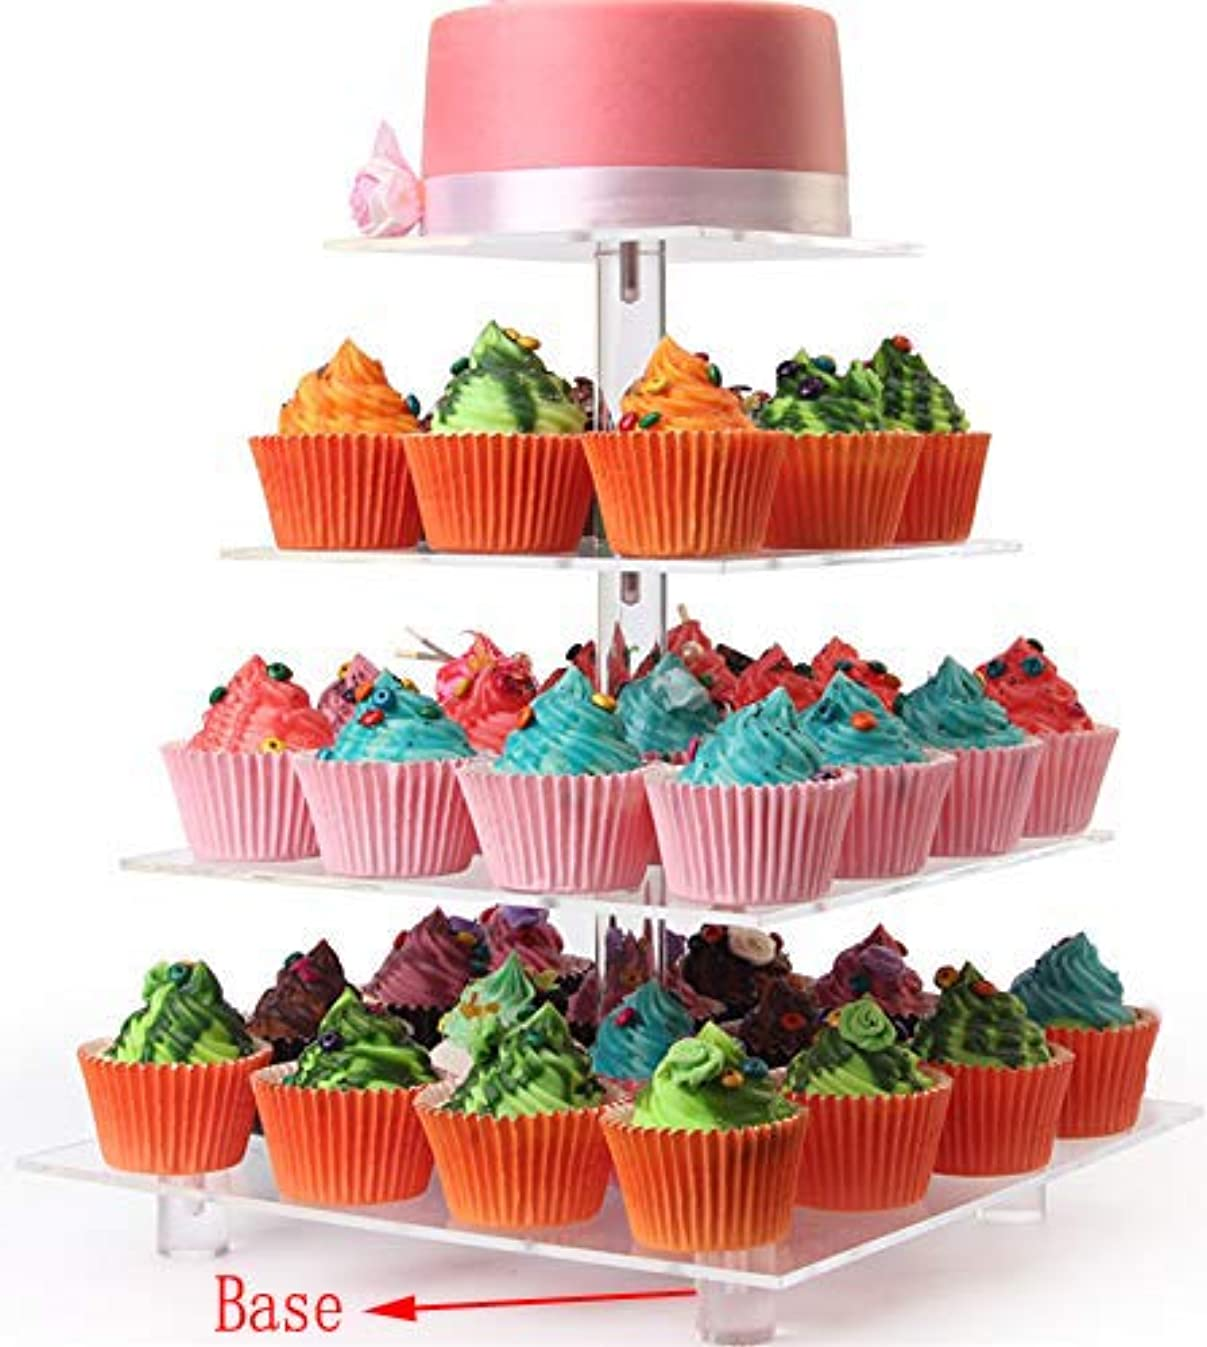 LoveDisplay 4 Tiers Maypole Square Acrylic Cupcake Display Stands, Wedding Clear Dessert Stand, Cupcake Tree Tower(With Base)